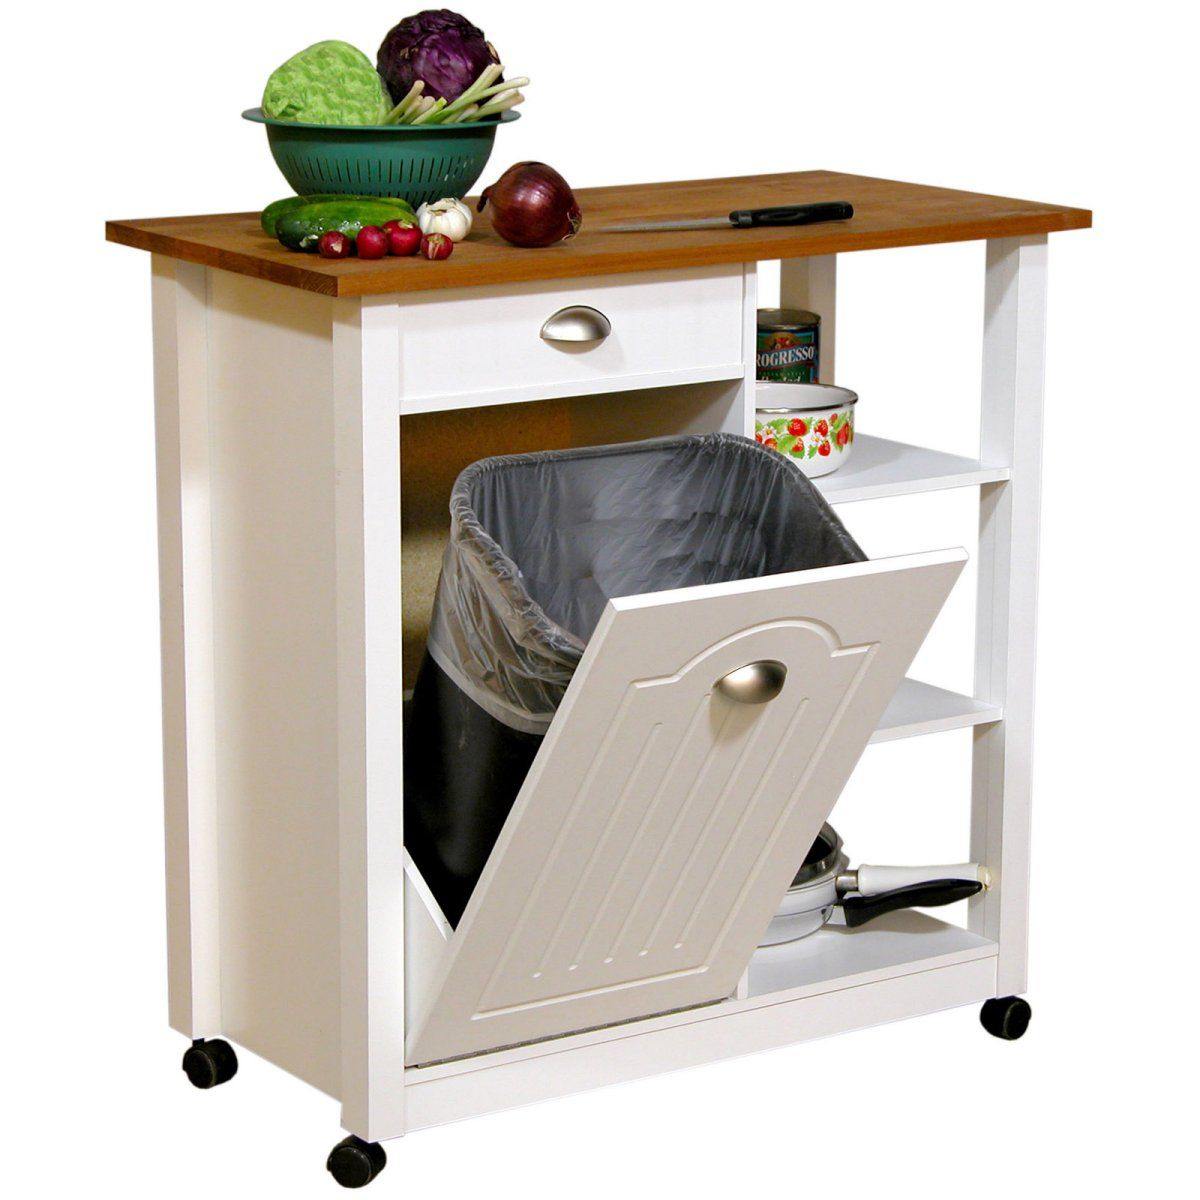 together garbage size small plus storage kitchen holder trash out tilt of can island full bin mobile with